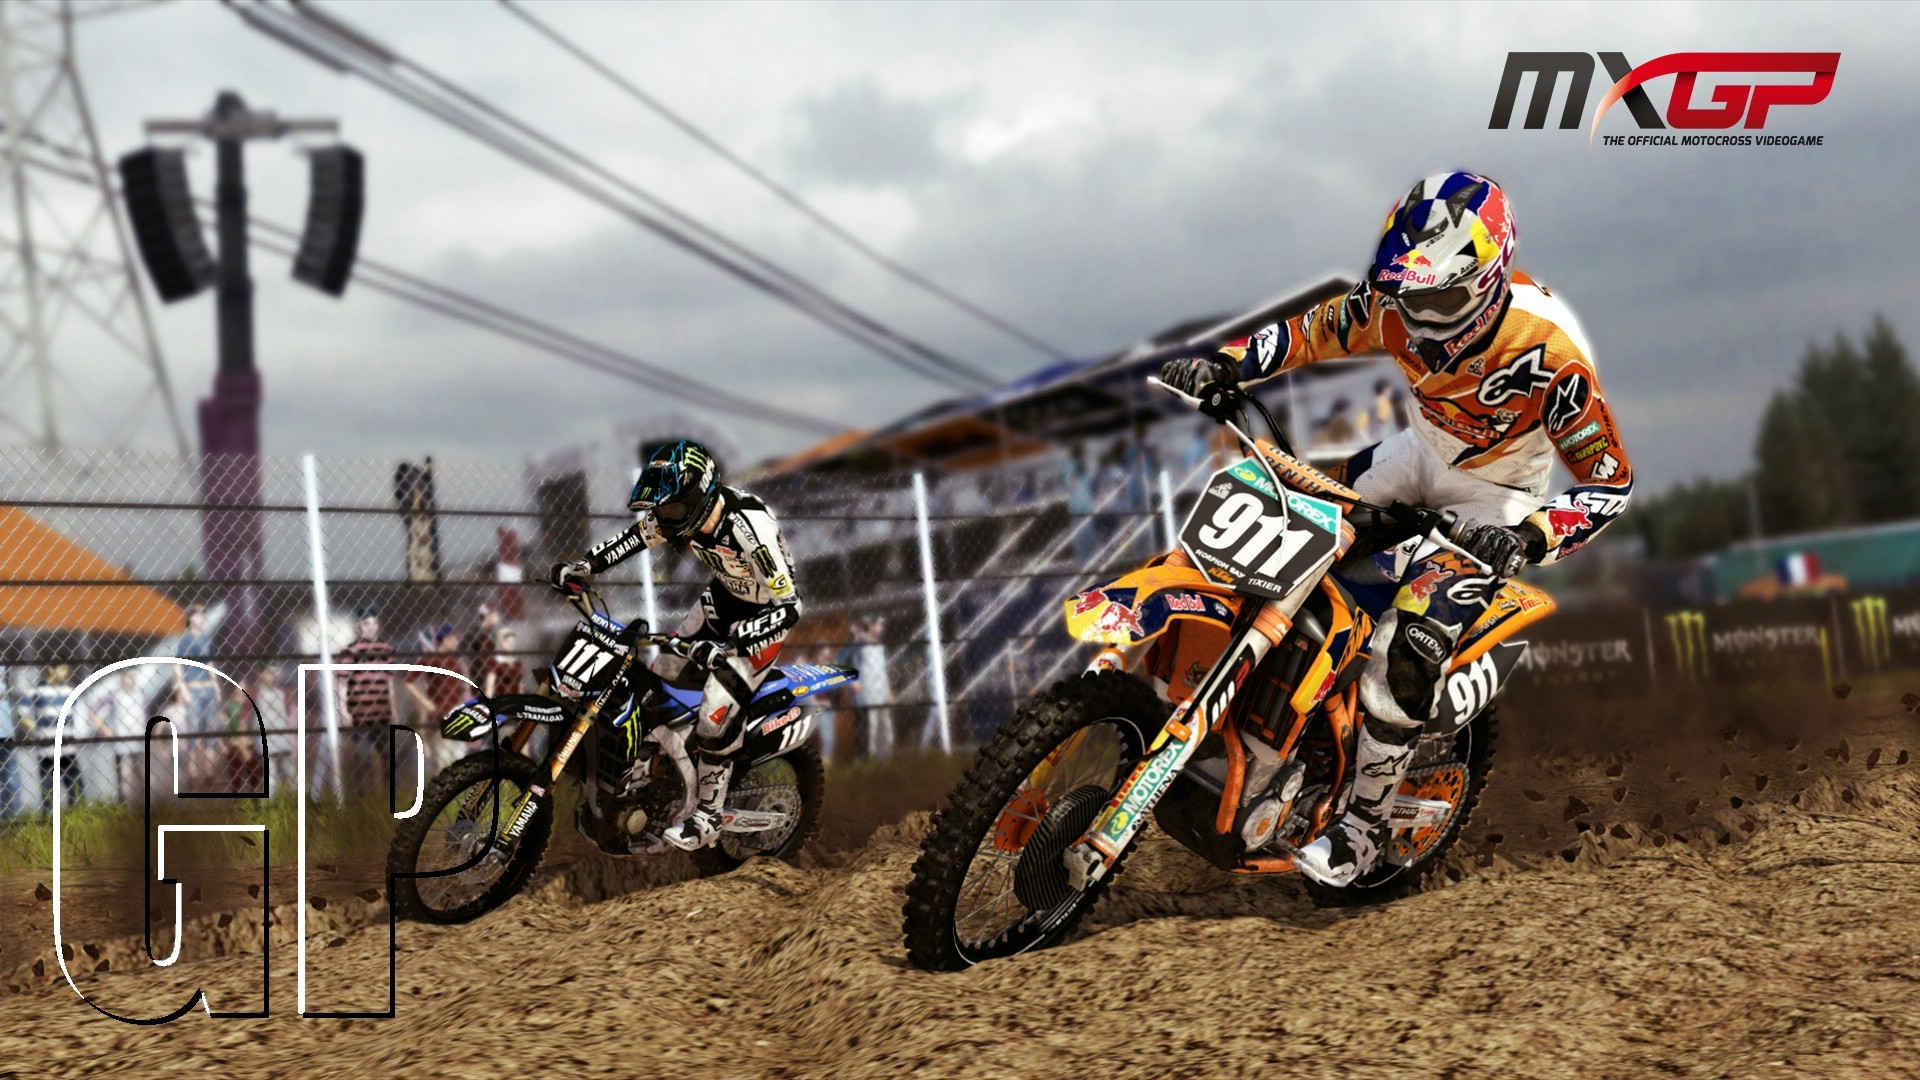 fond d'écran du jeu mxgp : the official motocross videogame